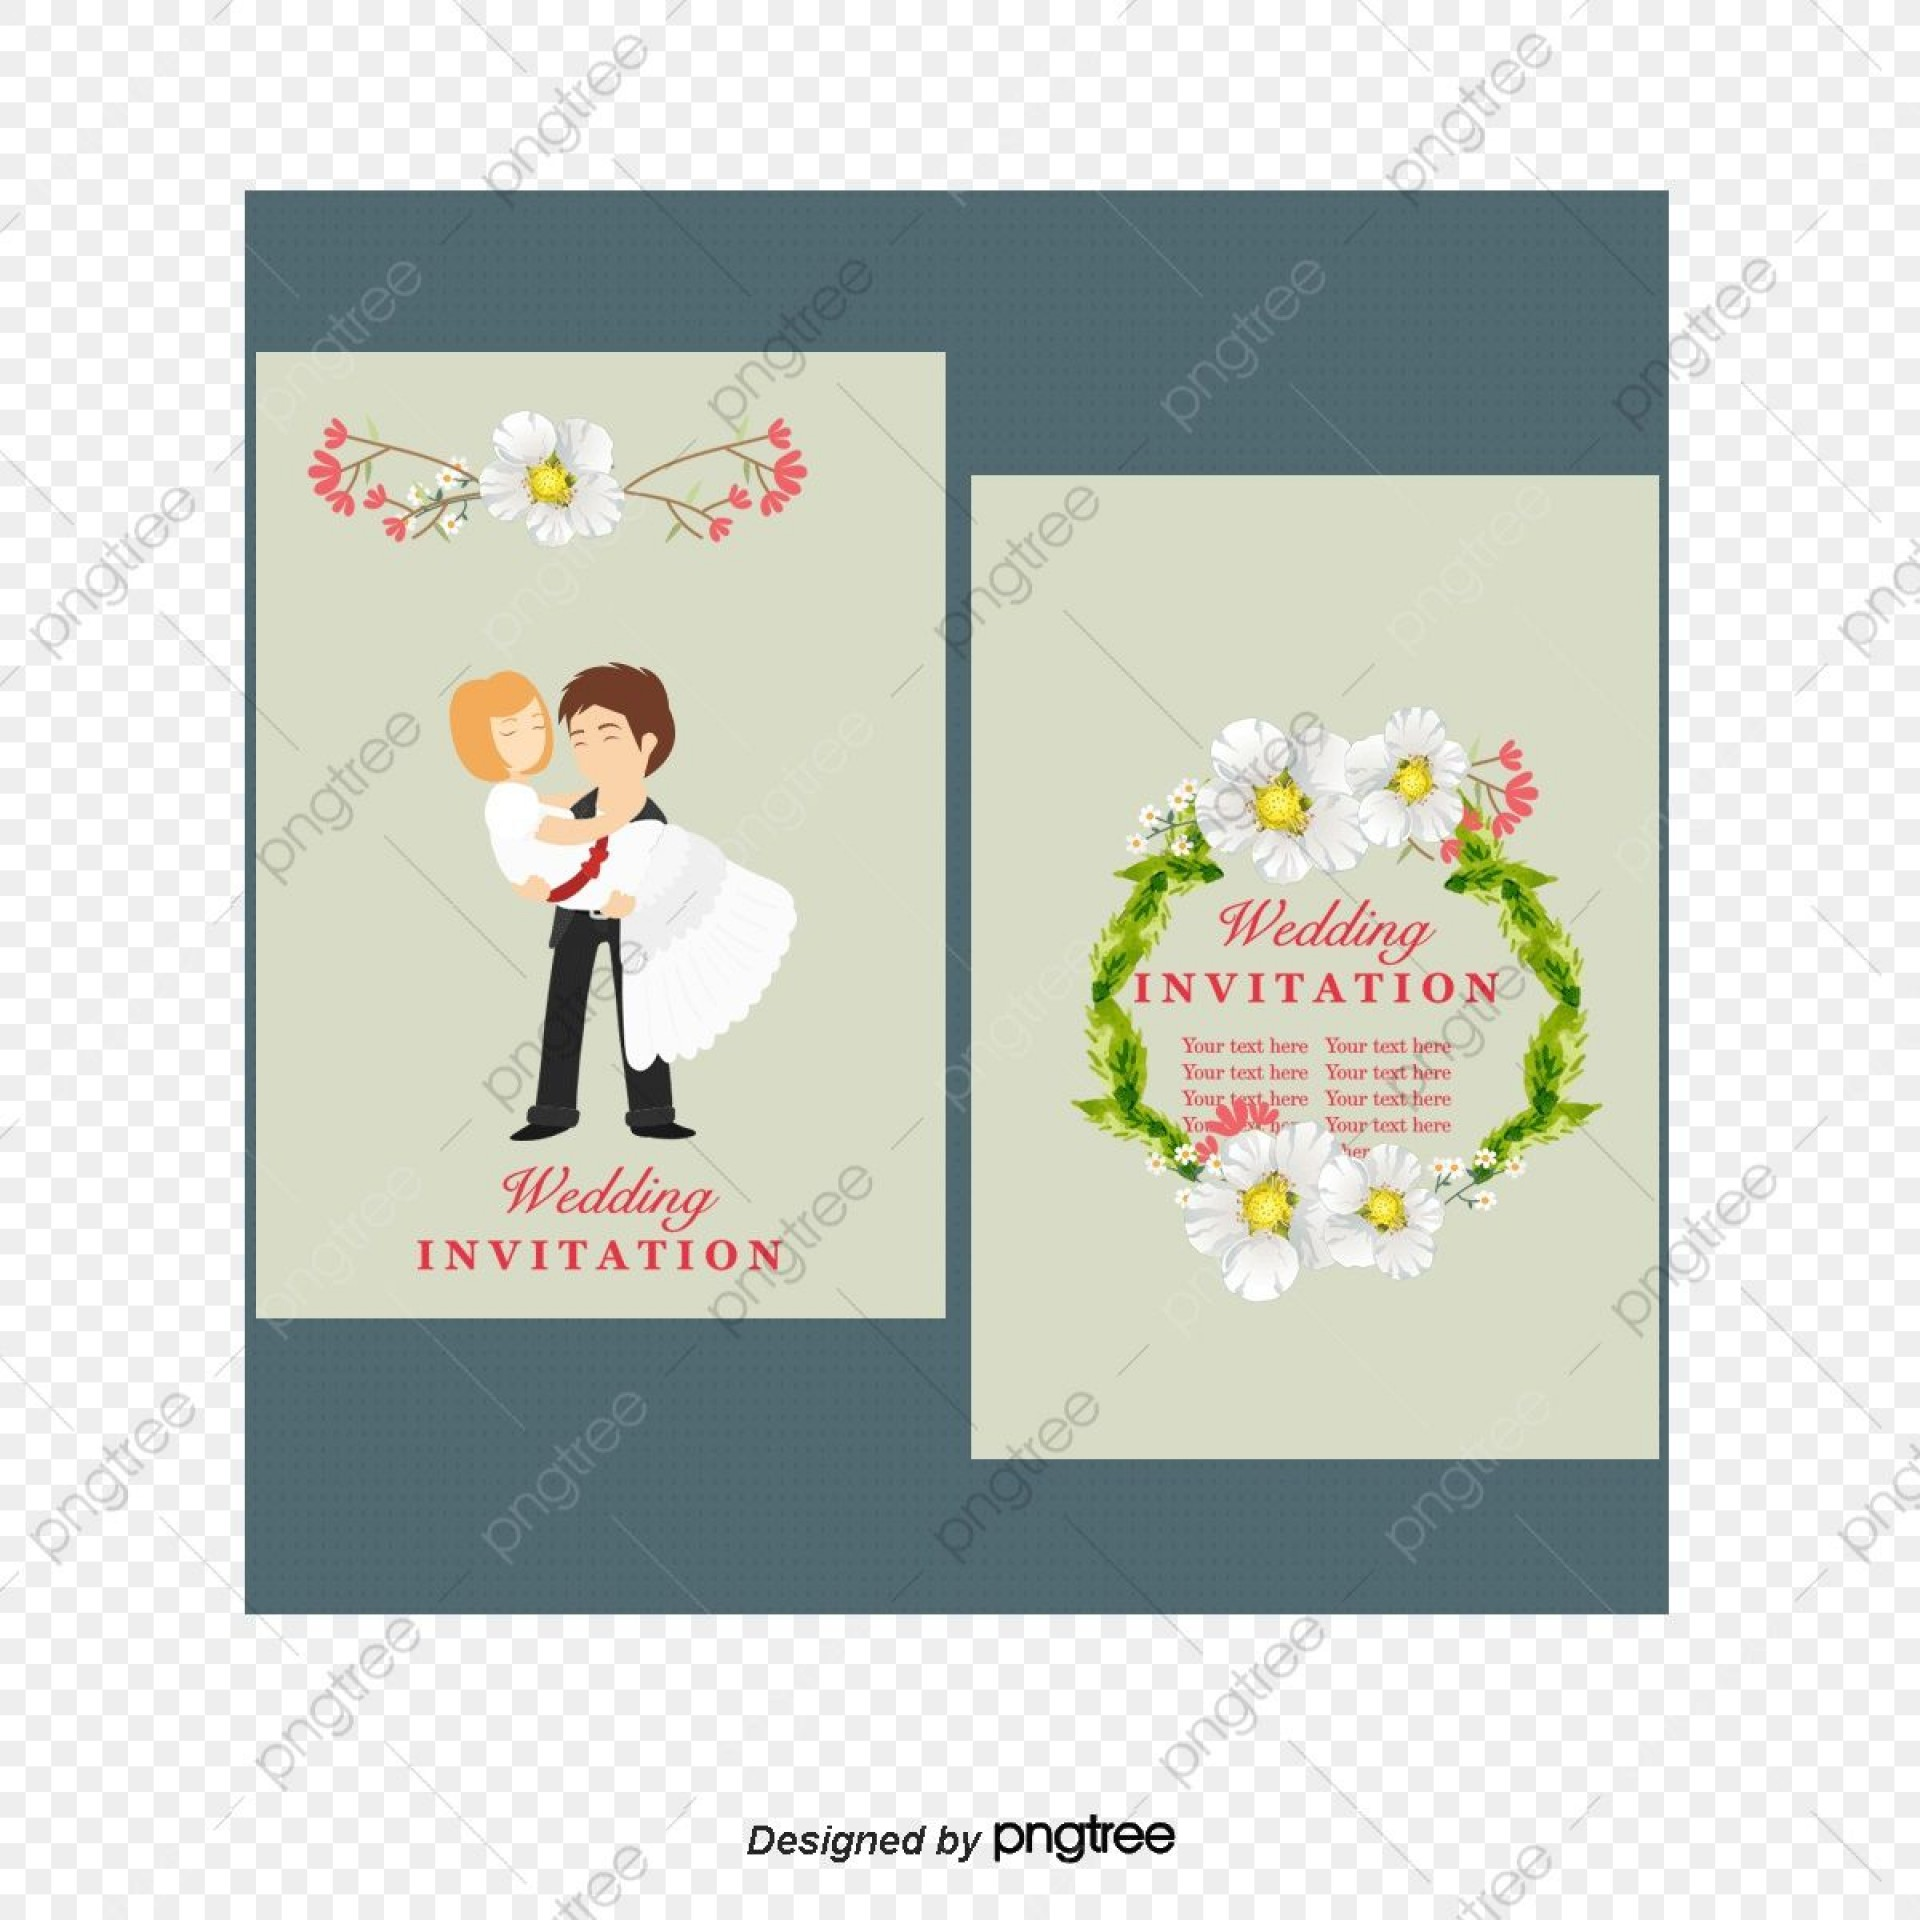 008 Archaicawful Download Free Wedding Invitation Card Template High Definition  Marriage Format Psd1920